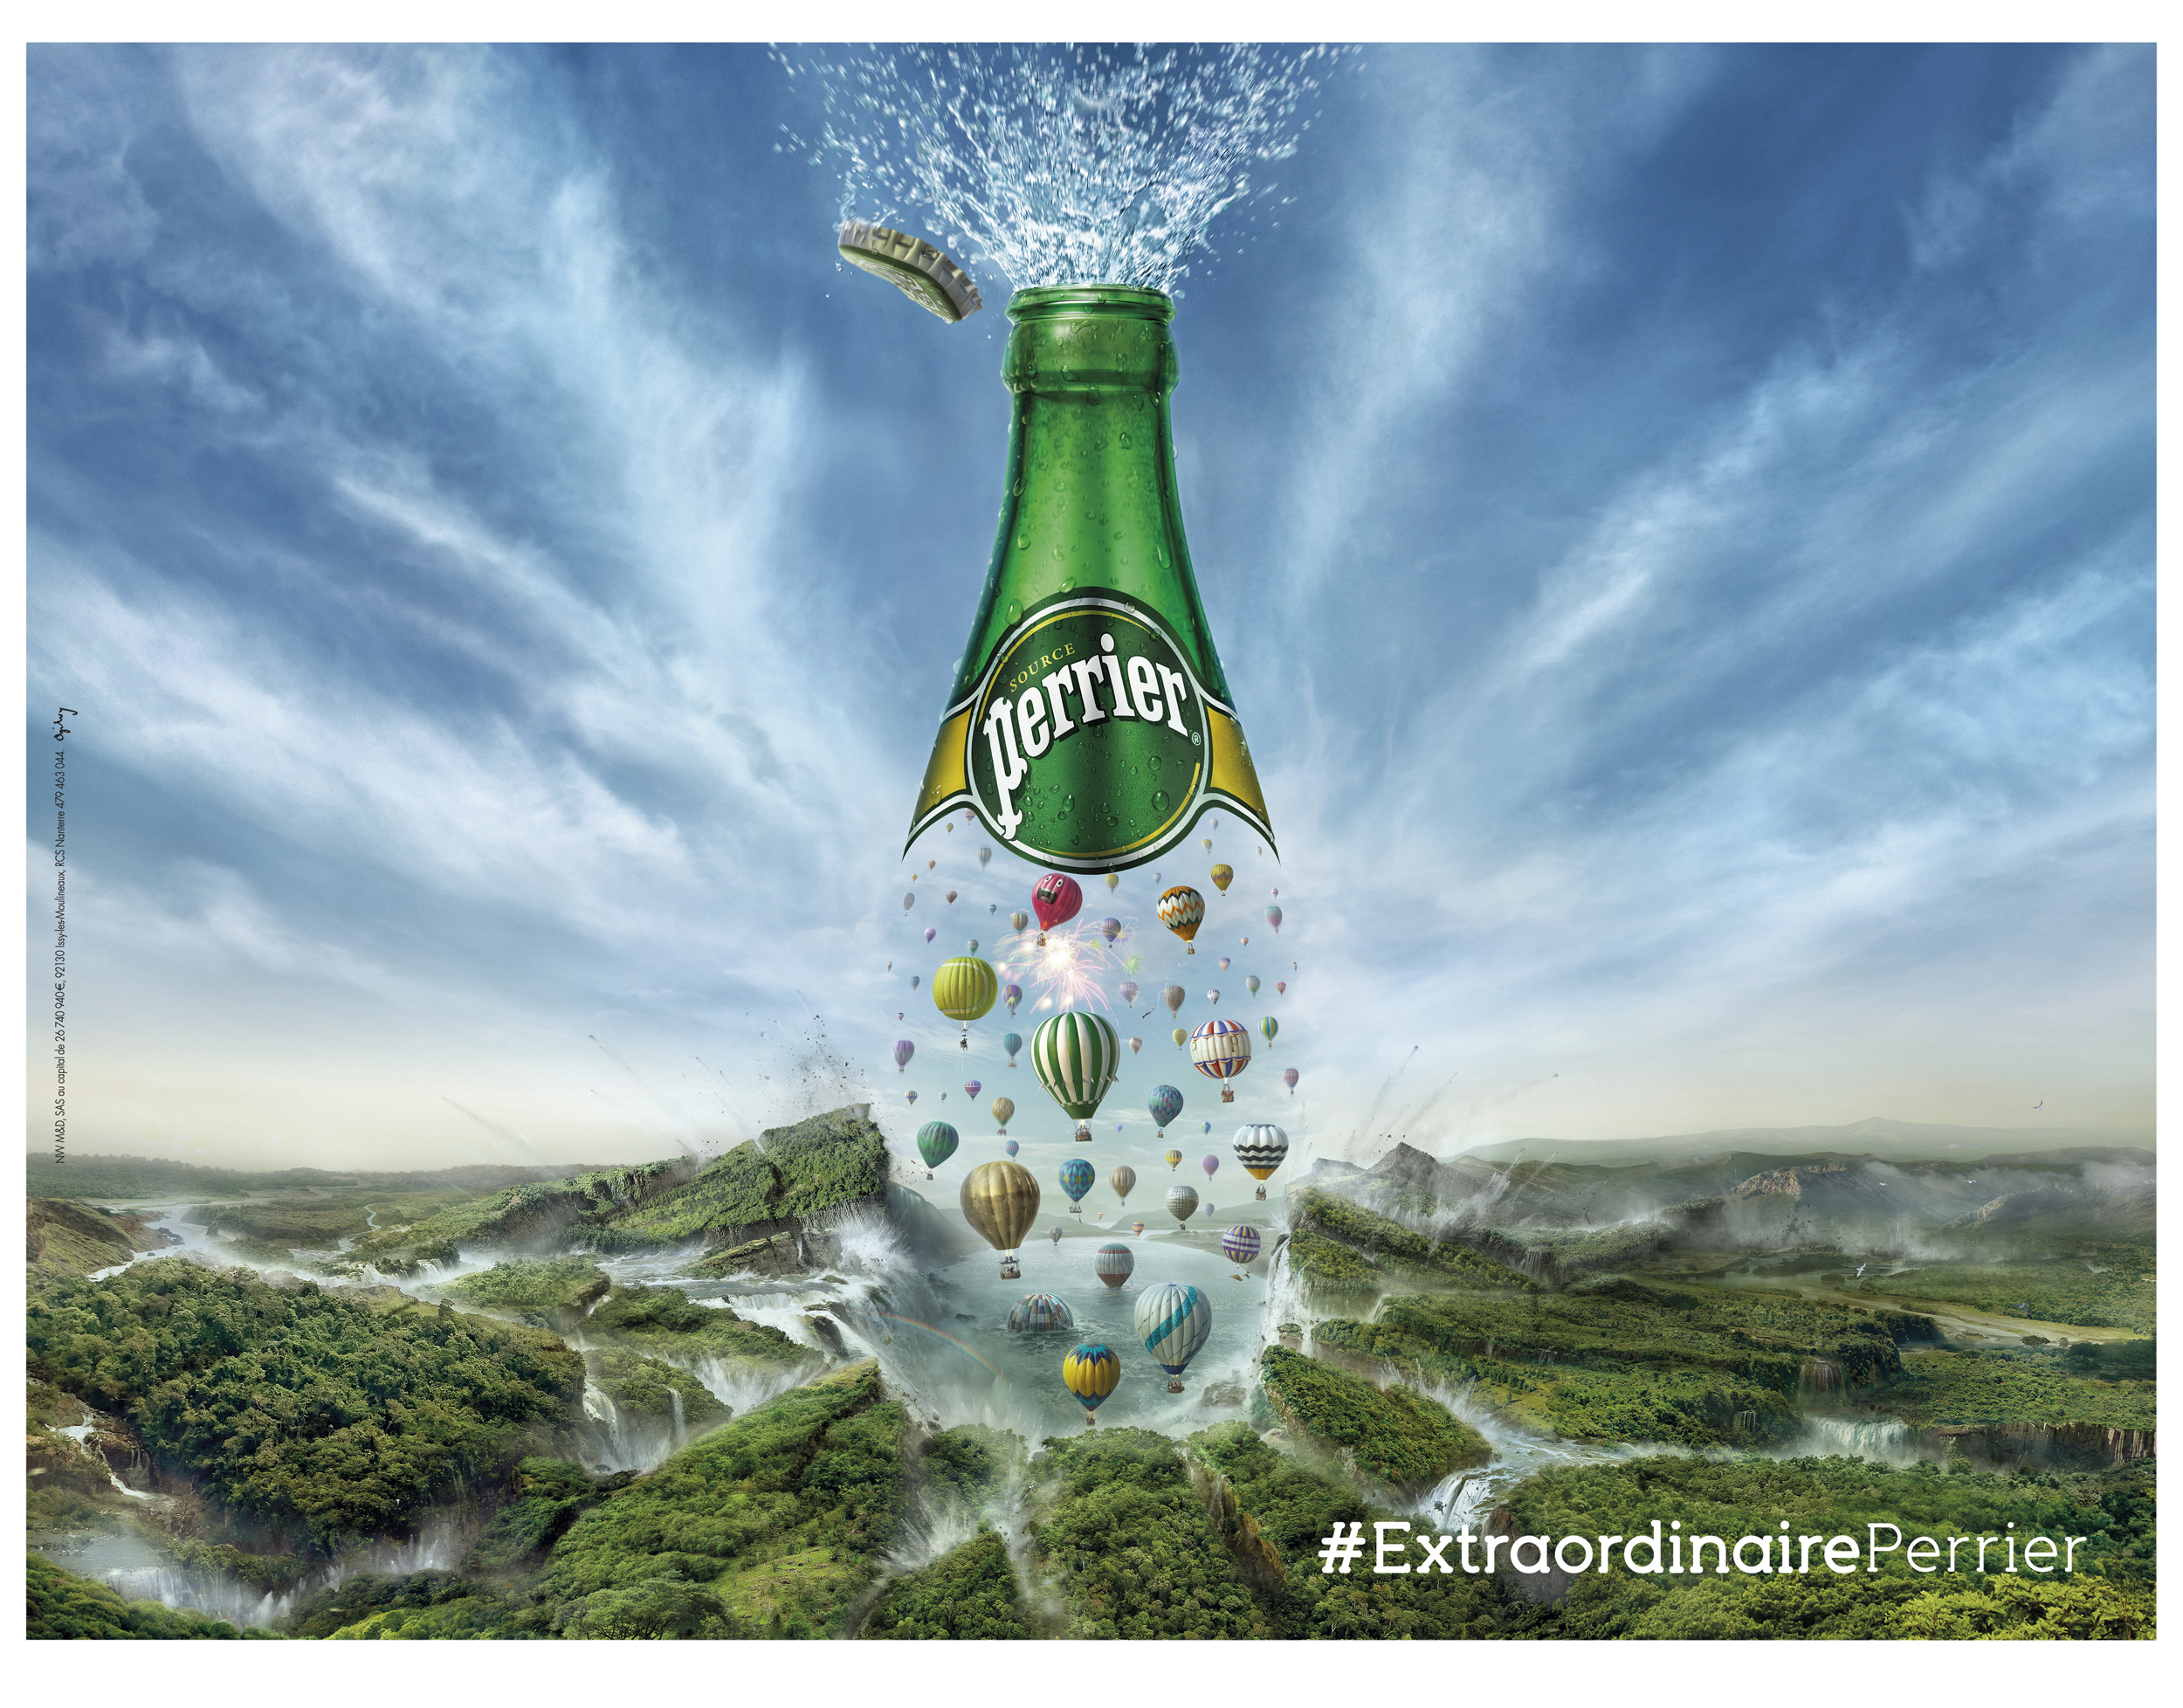 PERRIER_Balloon_2500.jpg